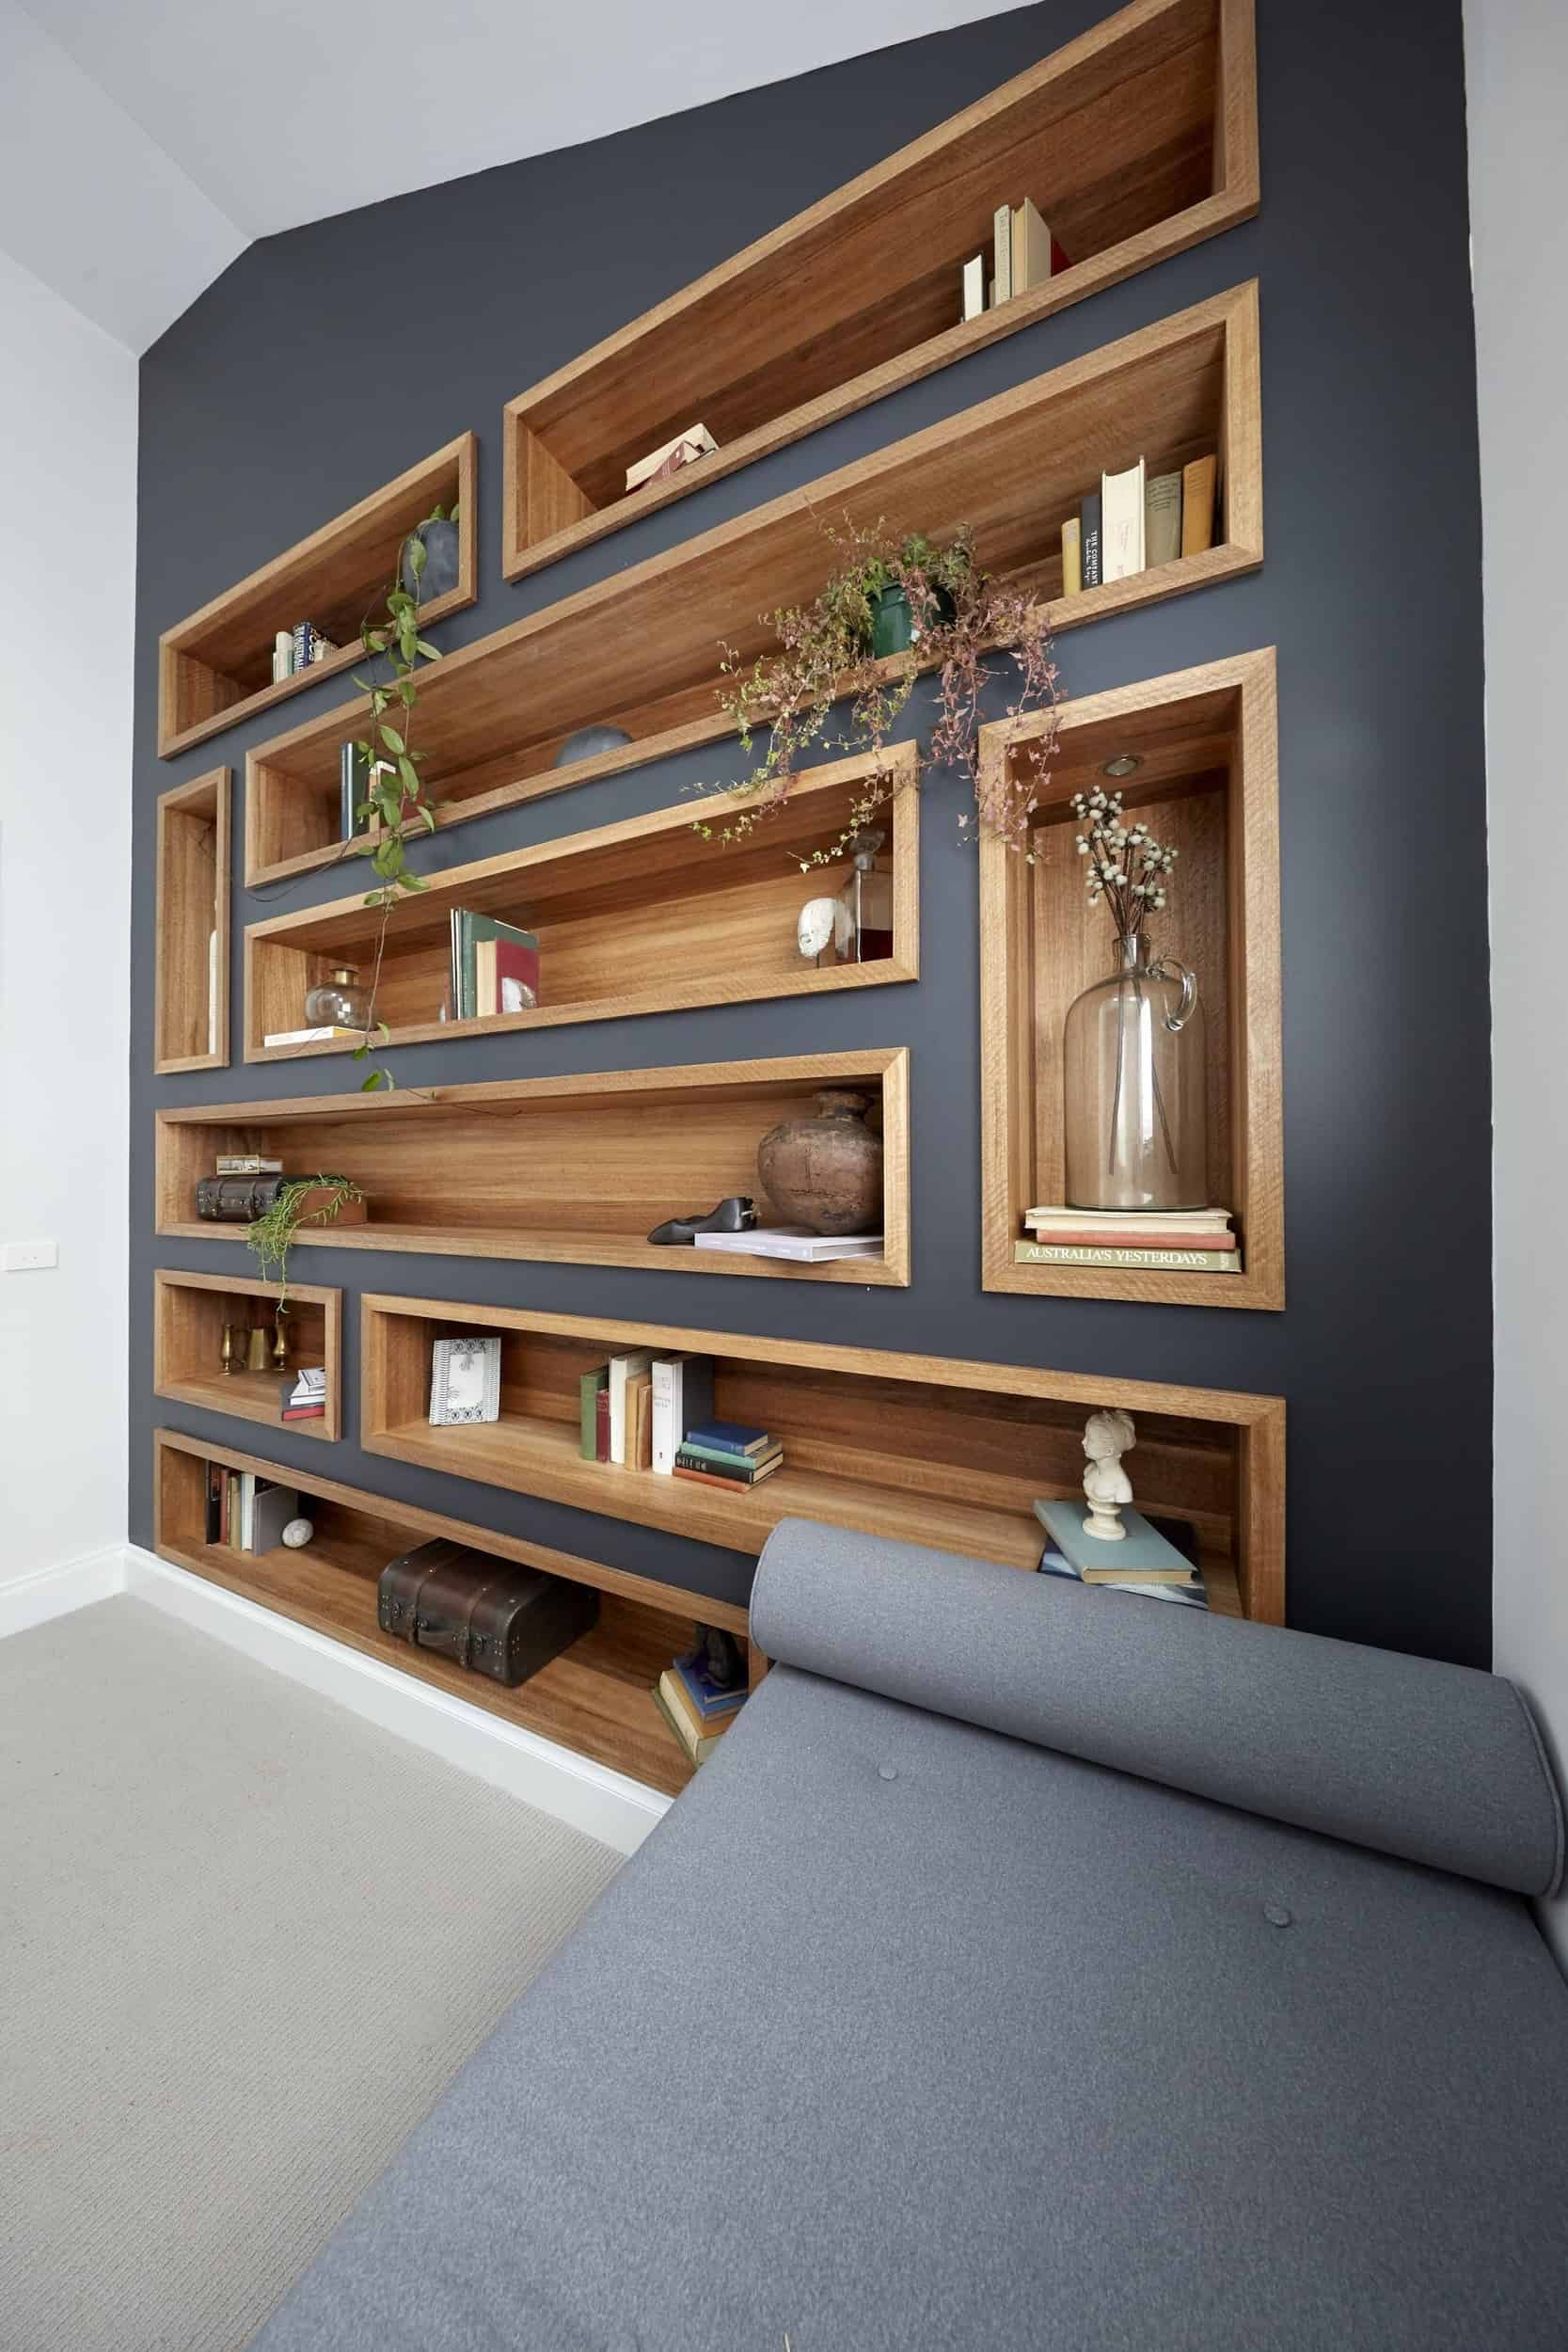 15 Cool Built In Shelves Ideas Remodel Or Move